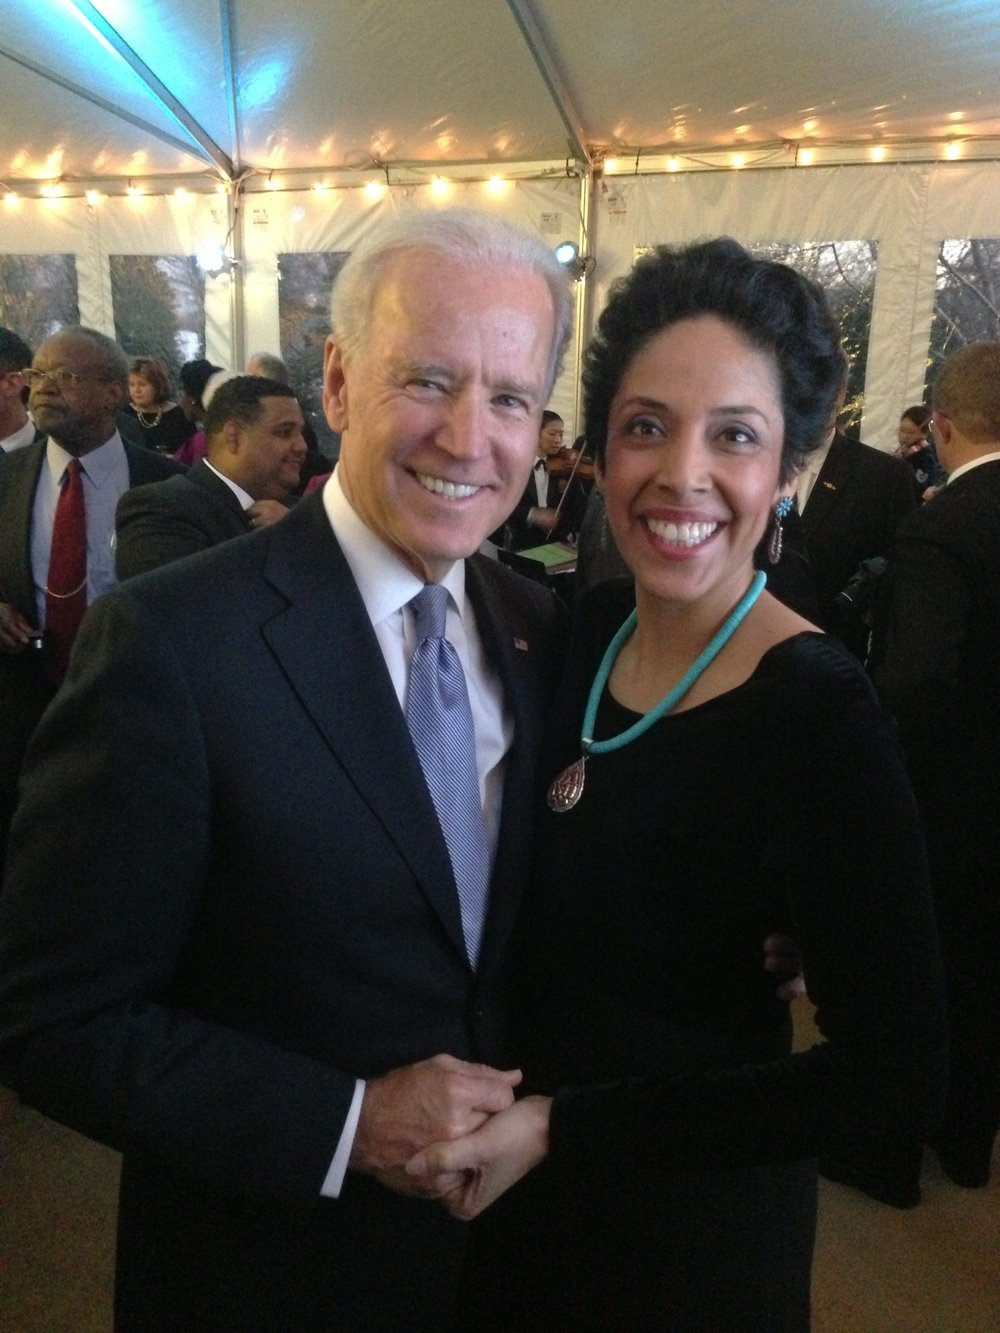 Vice President Joe Biden with Anna Maria Chávez